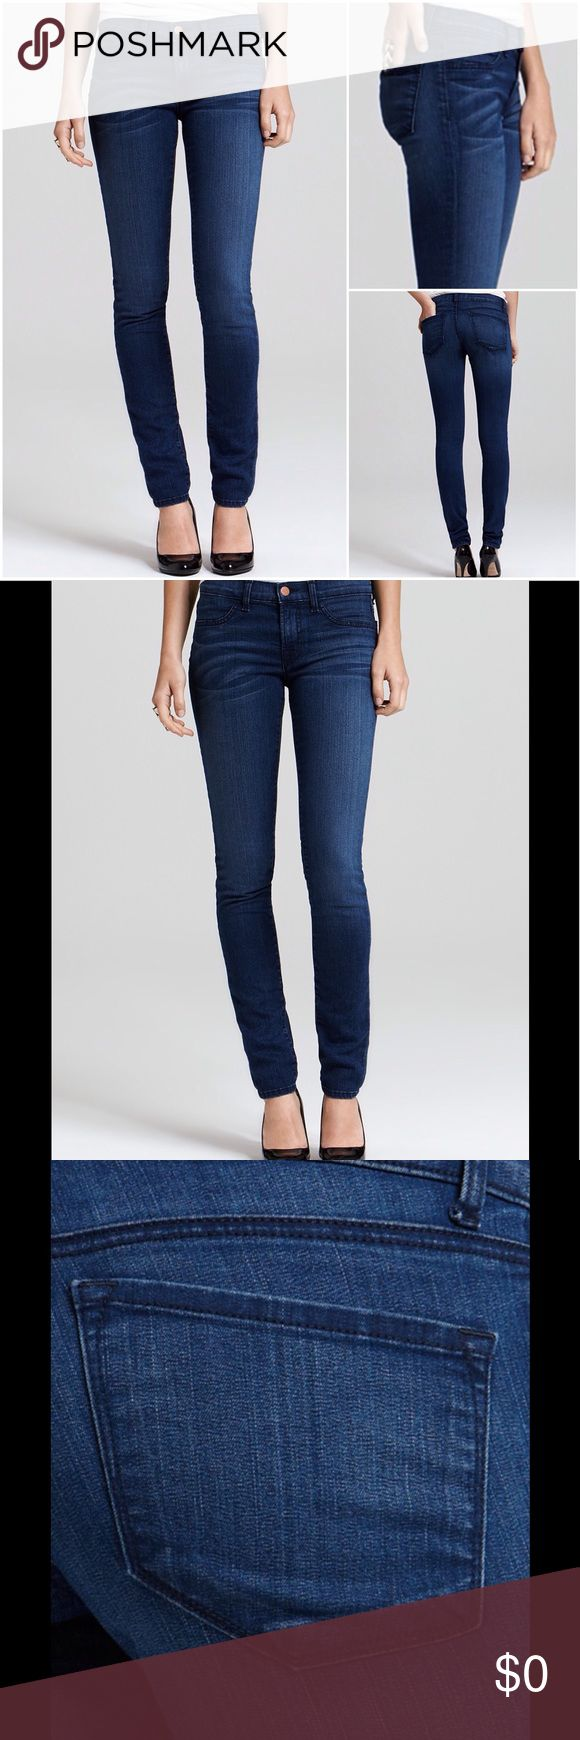 J BRAND $229** Denim Legging Super Skinny Jean New Without Tags.  SOLD OUT!  J BRAND Bloomingdales Exclusive Denim Legging Super Skinny Jeans in South Bay Wash.  (STRETCHY).  MFSR: $229.00.  SIZE: 29.     Heavy Front Whiskering & Fading puts a vintage spin on these sleek & sexy J Brand Jeans.  Tonal Stitching, Copper-Tone Hardware, Faux Front Pockets, Two solid flat back patch Pockets.   Cotton/Spandex J Brand Jeans Skinny